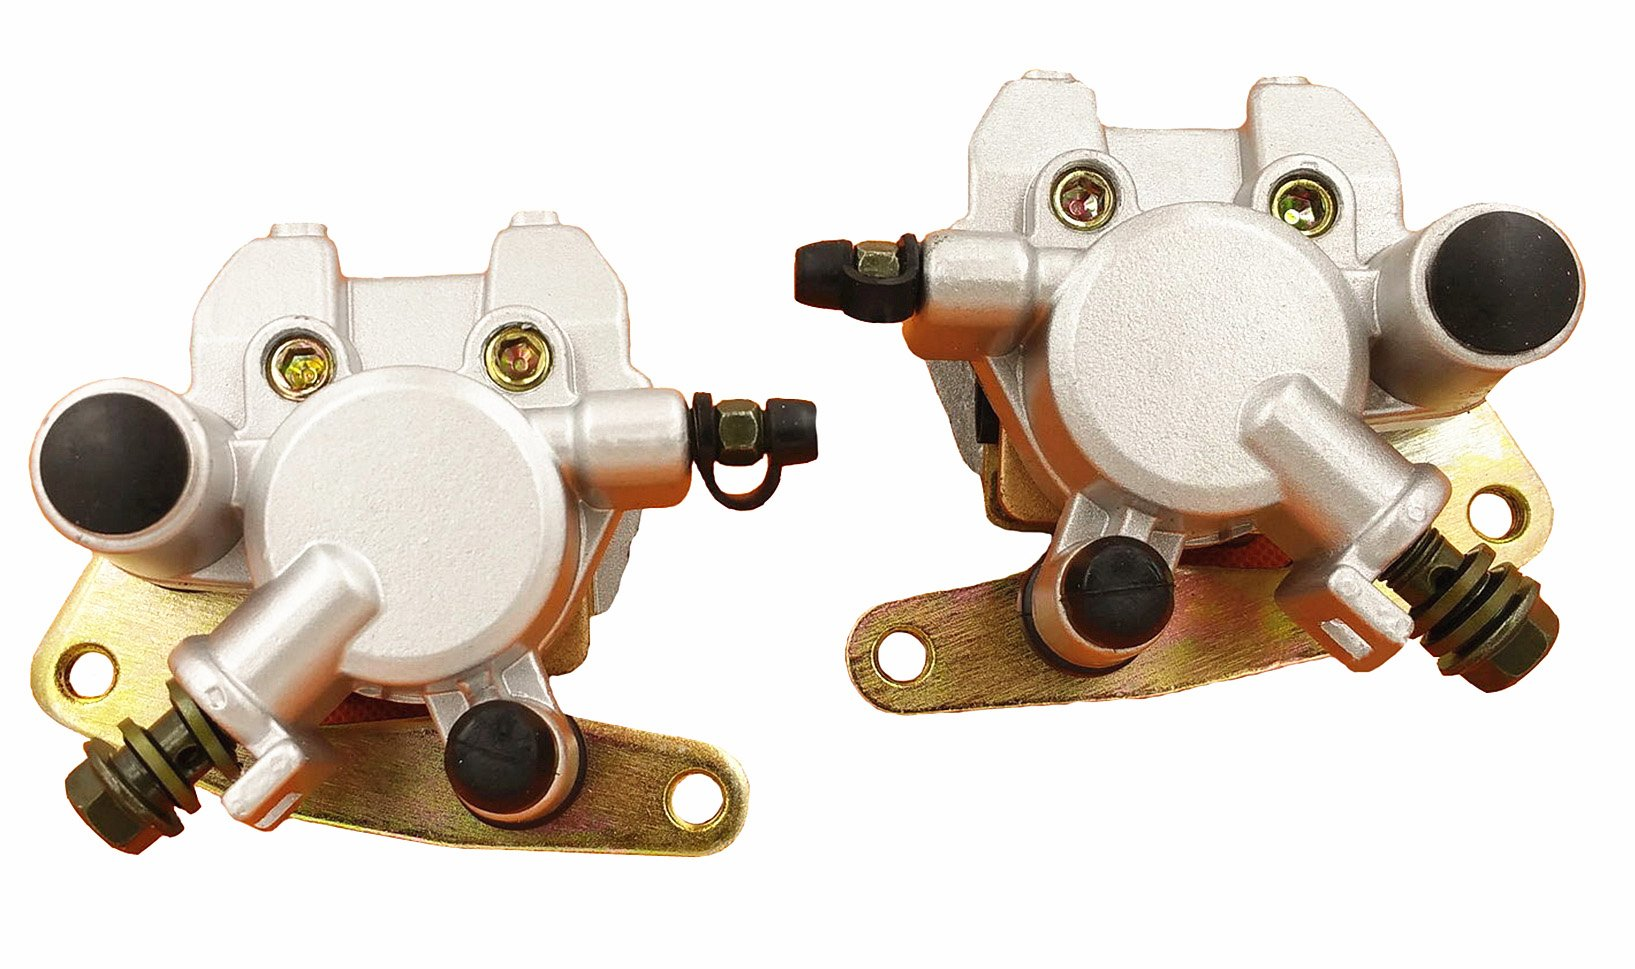 New Front Brake Caliper Set For Yamaha Kodiak 400 1999-2006 Kodiak 450 2003-2006 LEFT&RIGHT by Sunkey